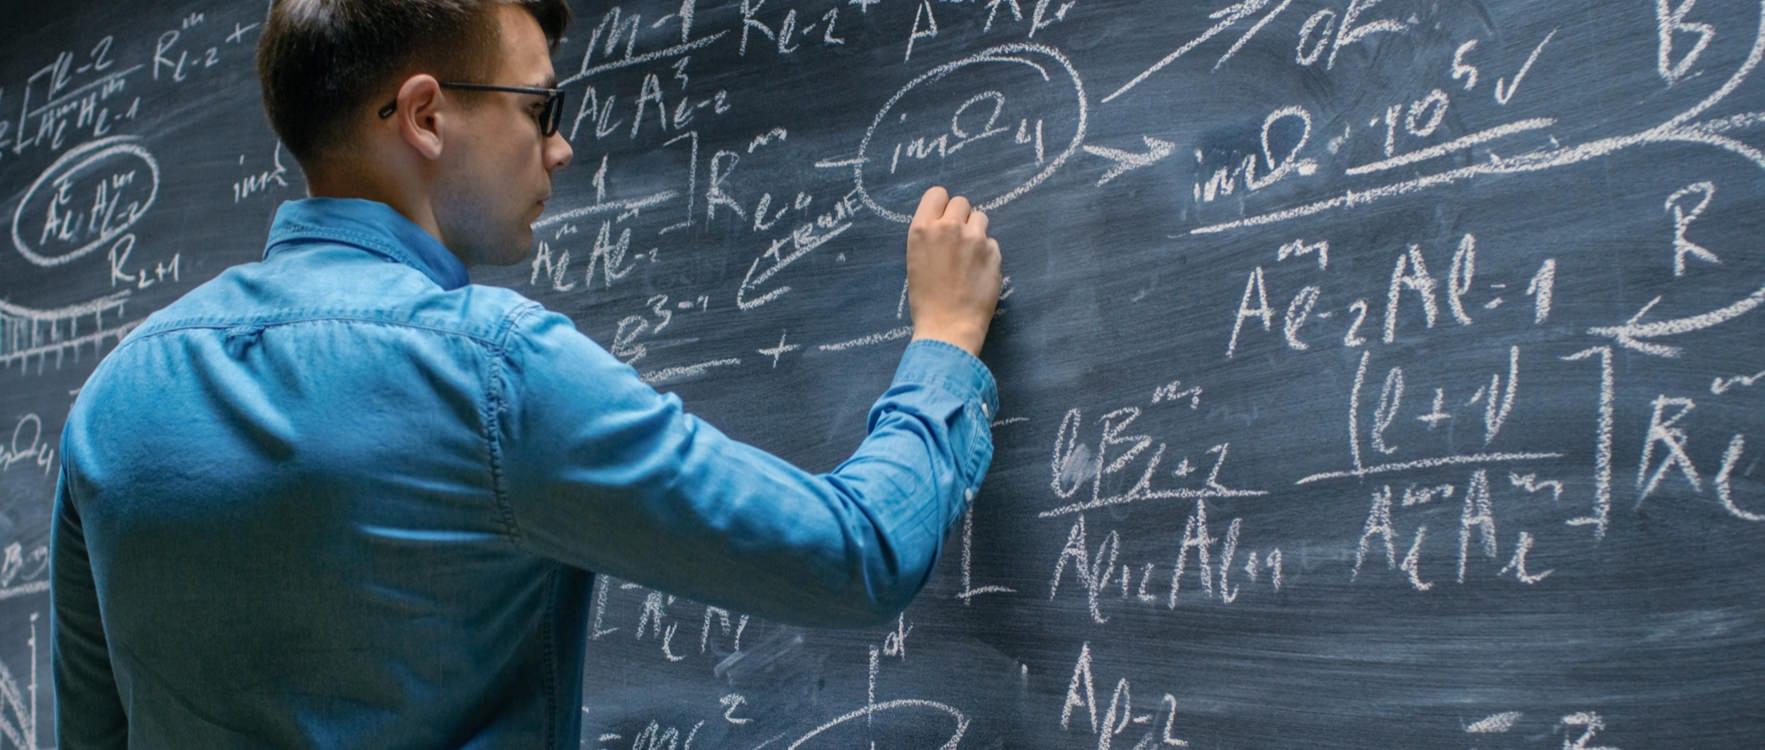 Man writing math equations on a blackboard